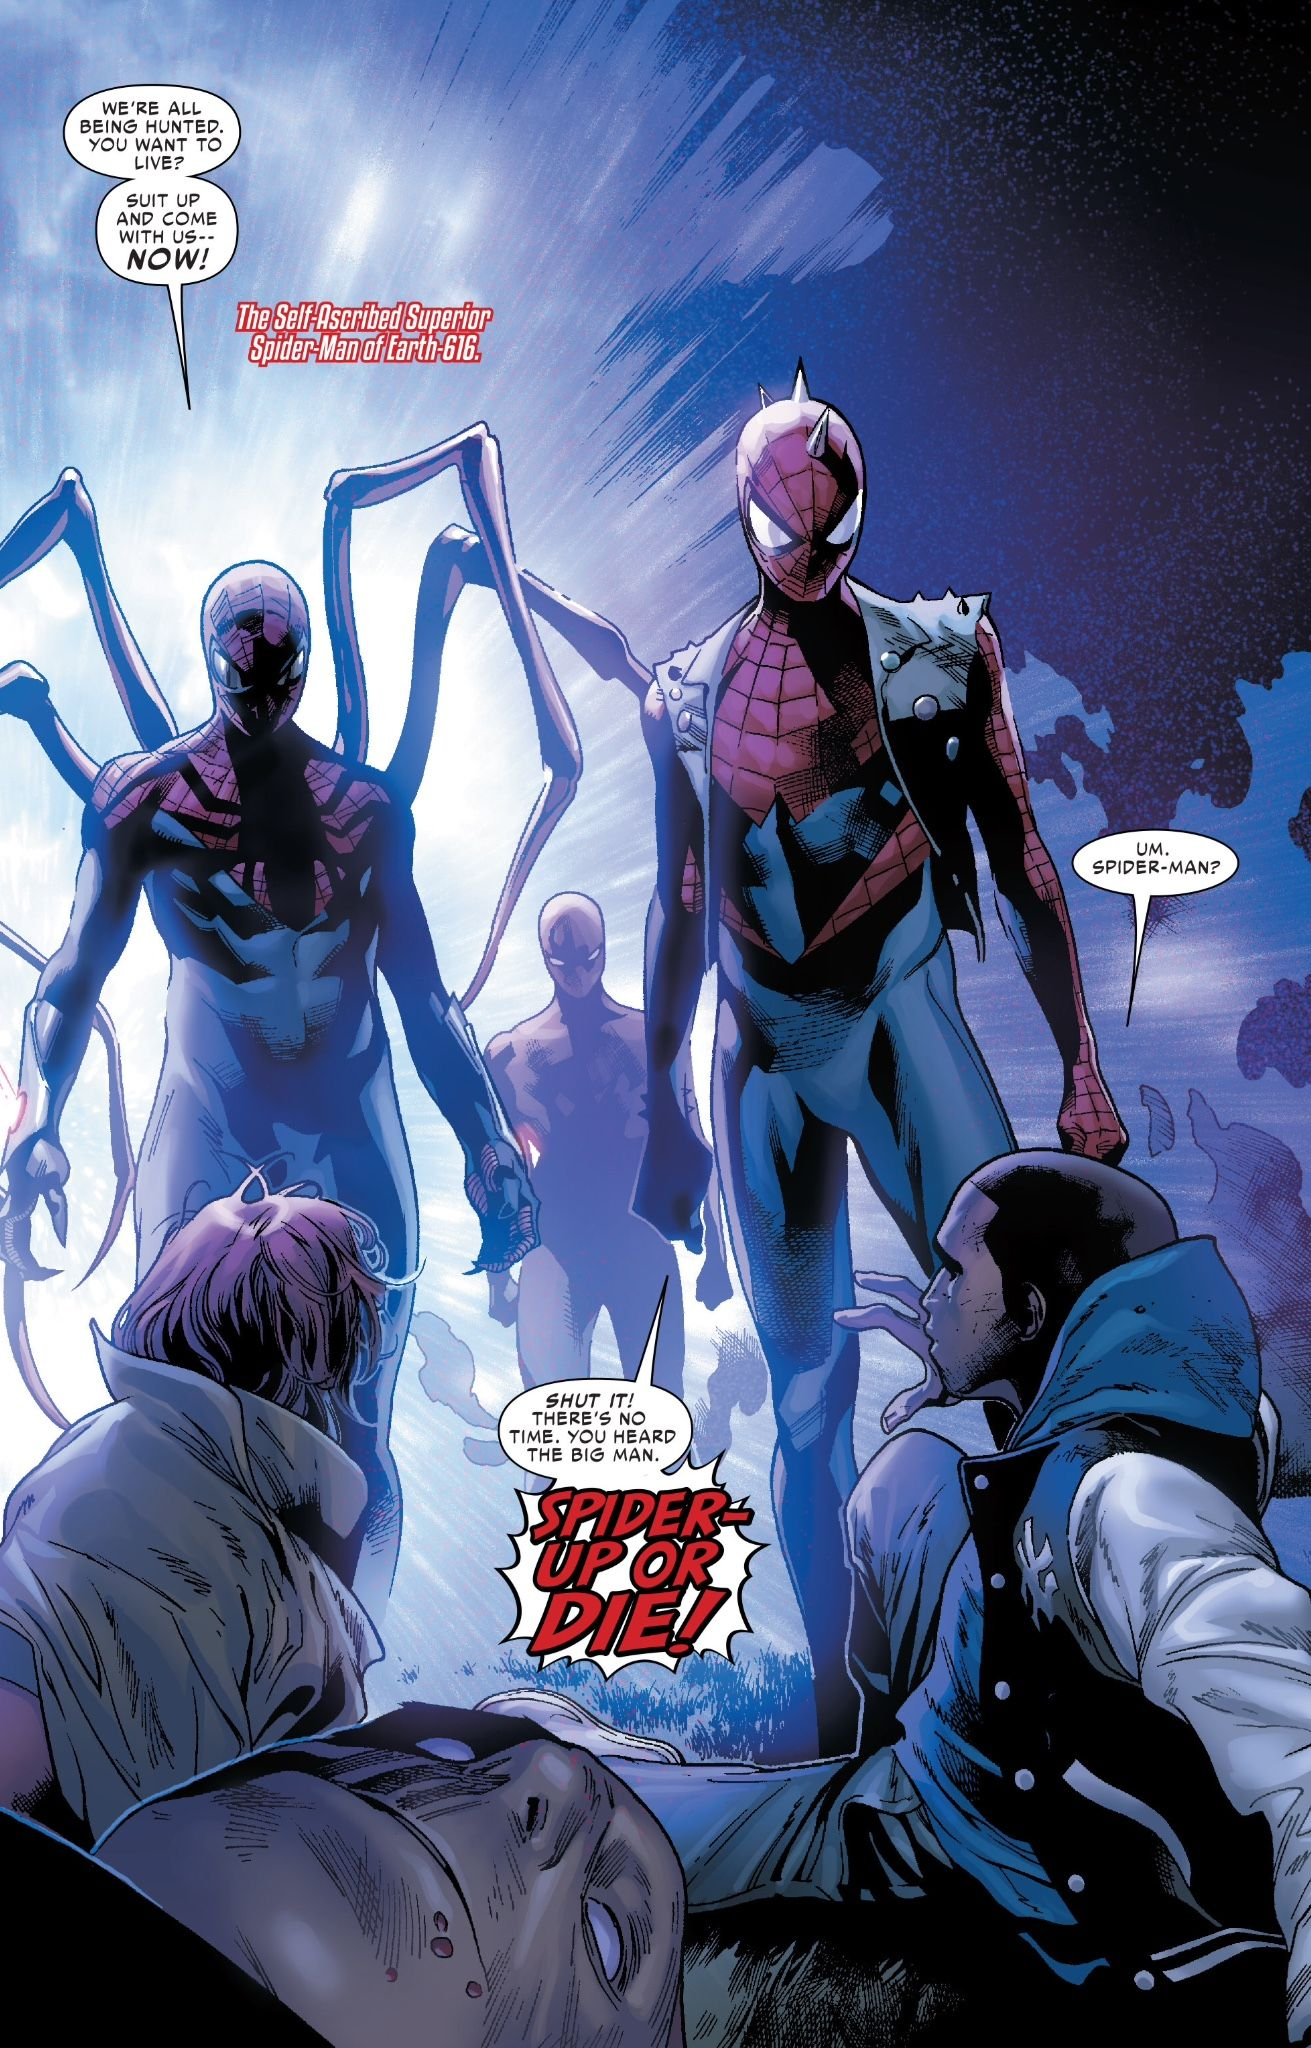 Spider Ock's tribe assembles in Amazing Spider-Man #10 (Spider-Verse part 2)